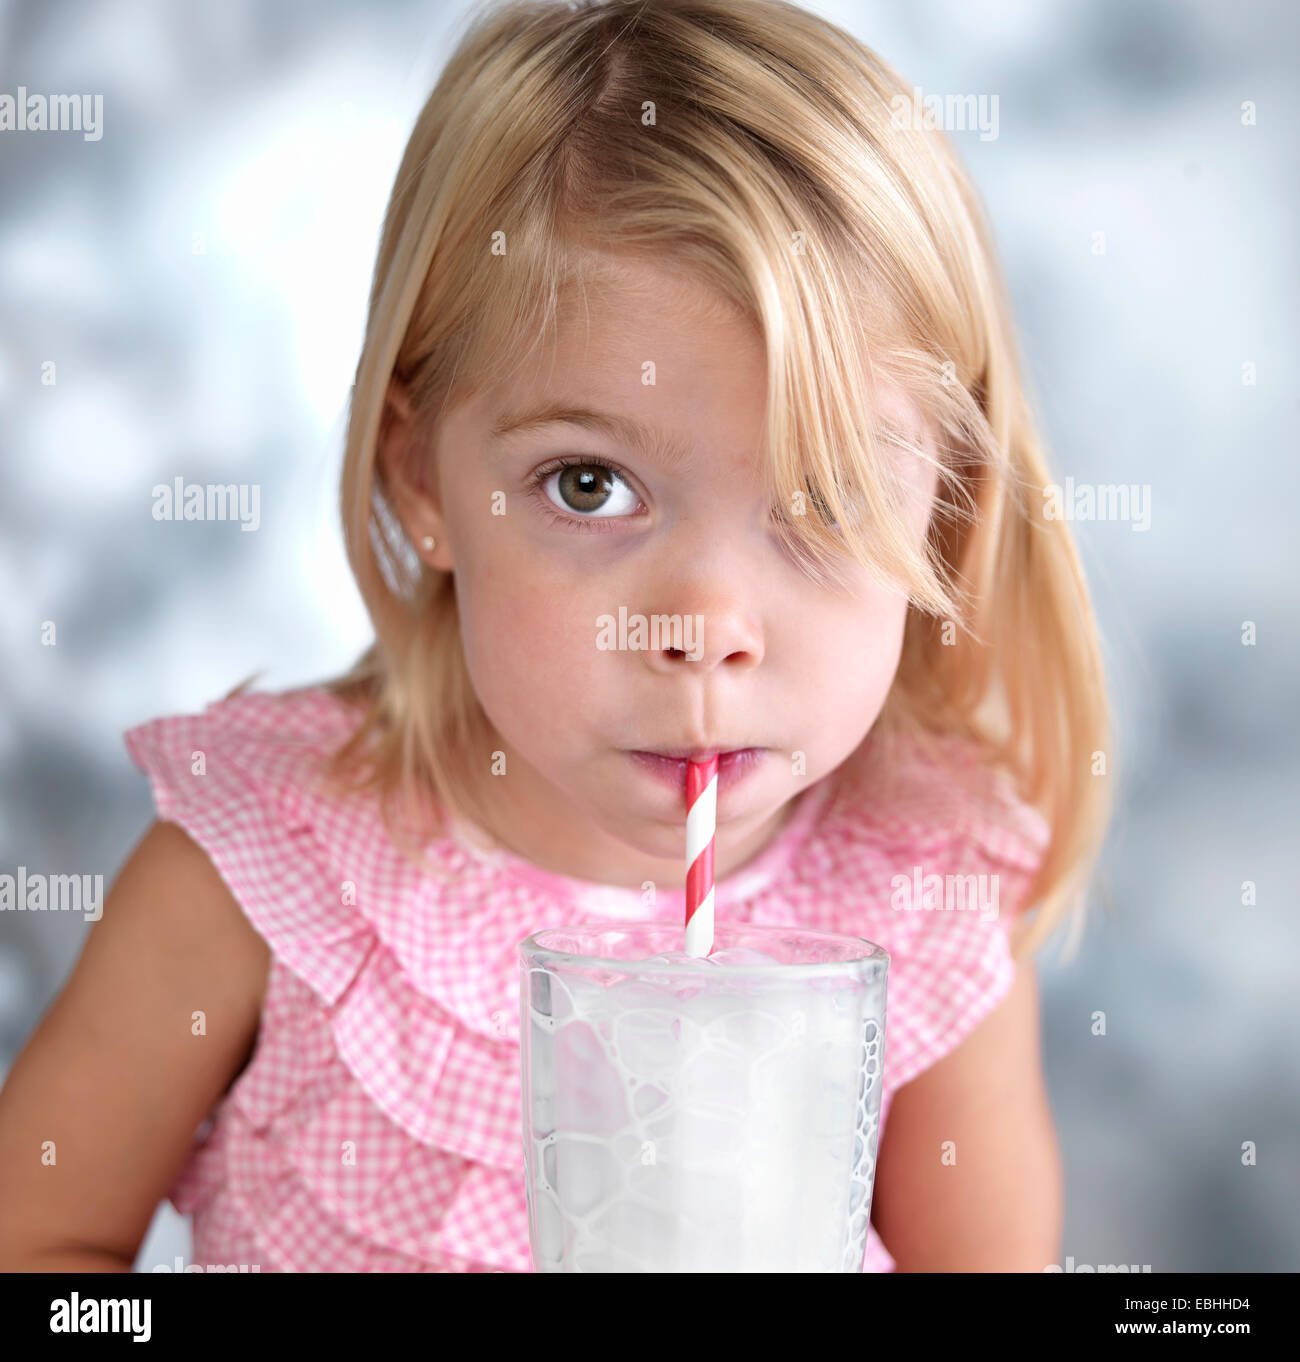 Portrait of female toddler blowing bubbles in milk through drinking straw Stock Photo